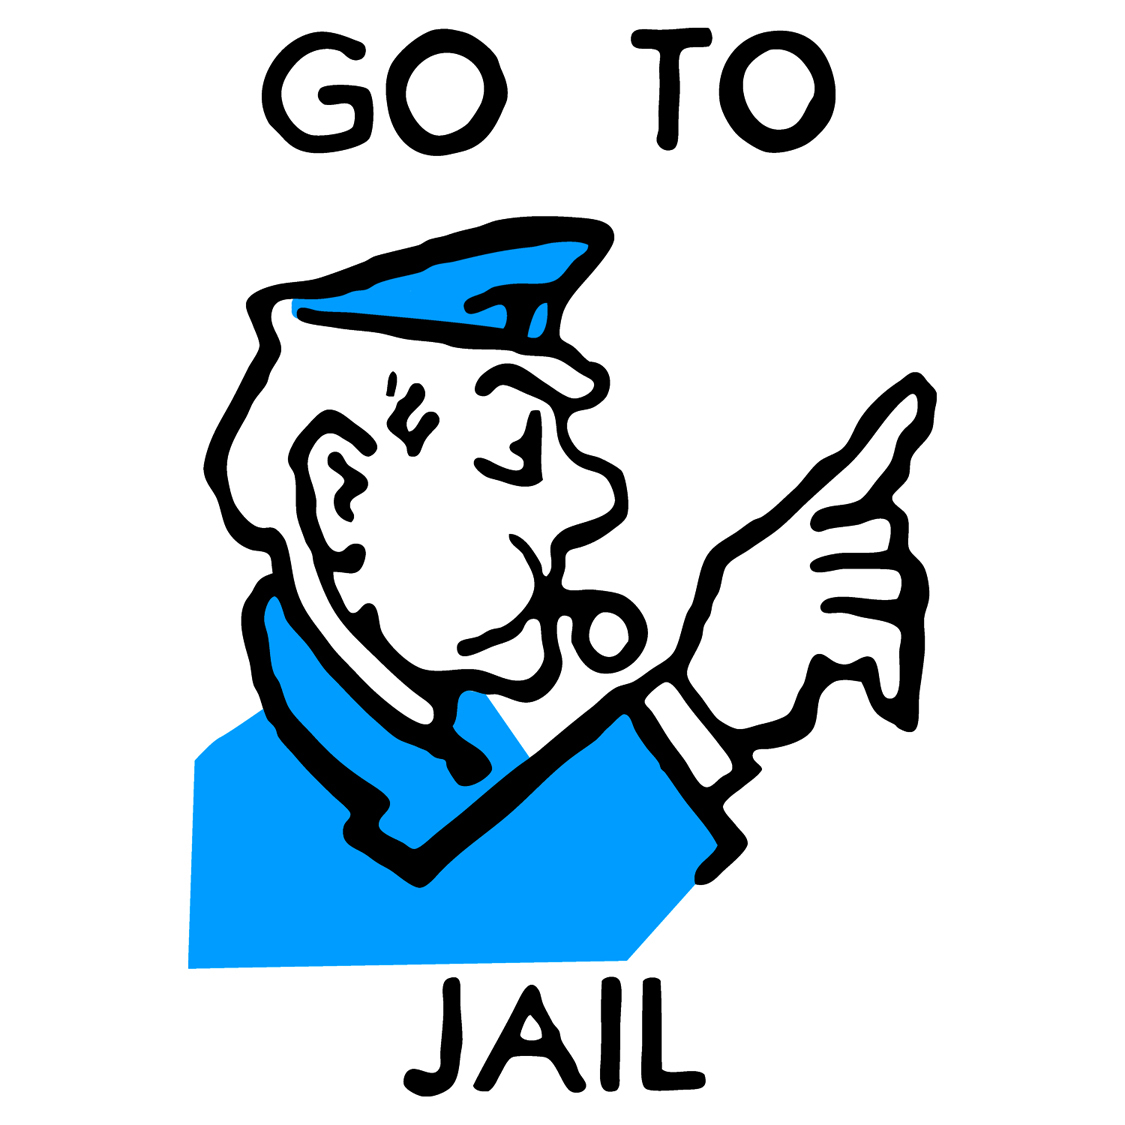 1125x1125 Go To Jail Clipart amp Go To Jail Clip Art Images